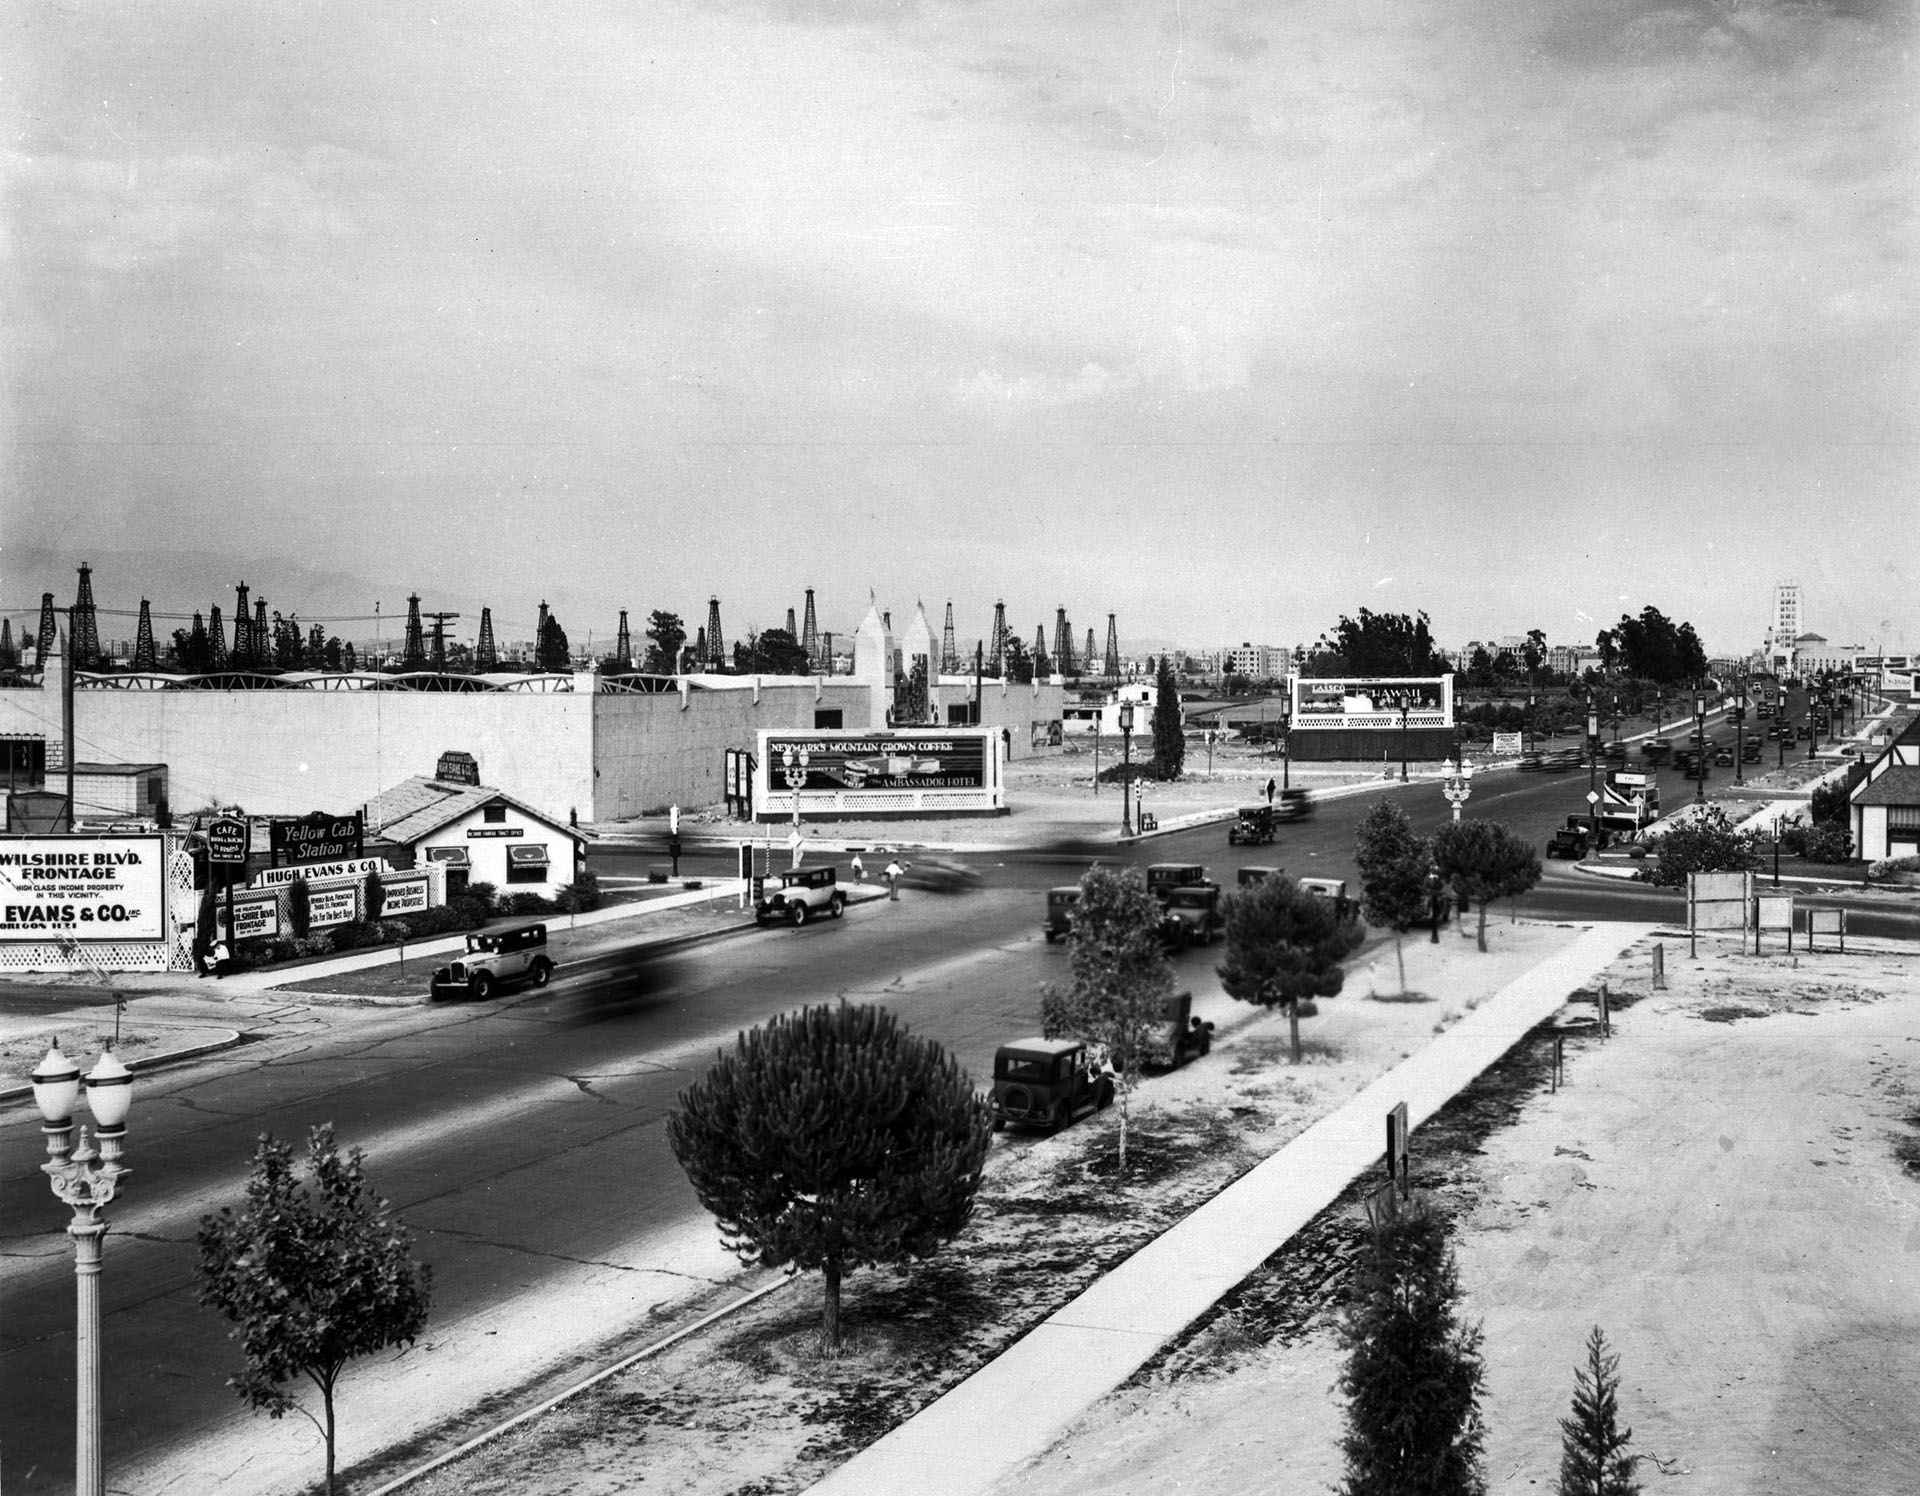 Circa 1929 view of the Miracle Mile, looking east down Wilshire from Fairfax. Courtesy of the Title Insurance and Trust / C.C. Pierce Photography Collection, USC Libraries.